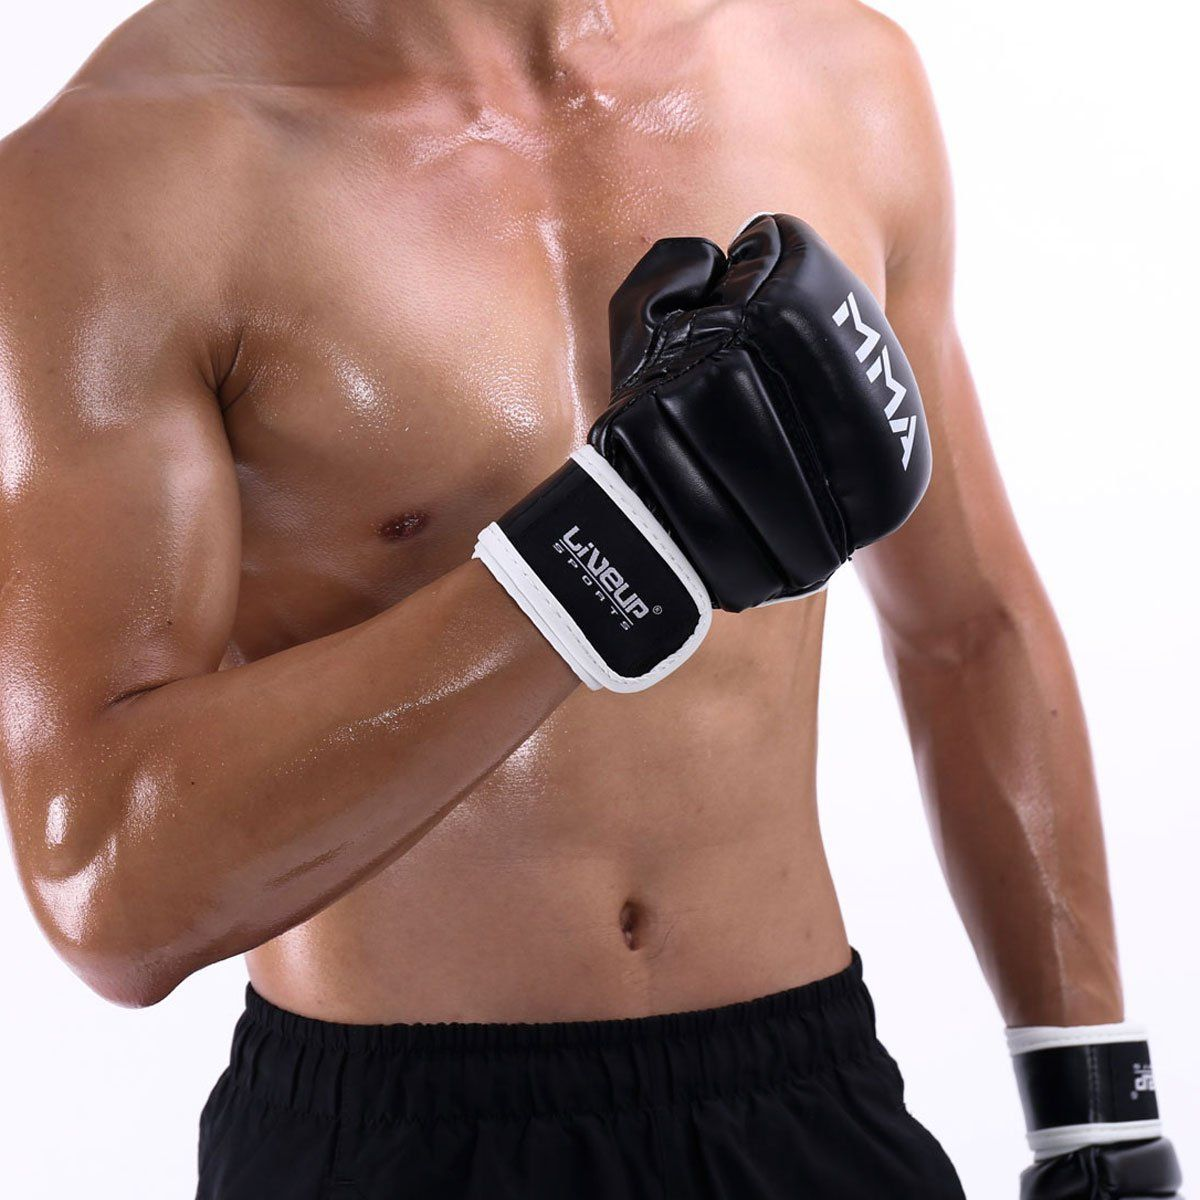 Liveup sports mma boxing gloves pu leather